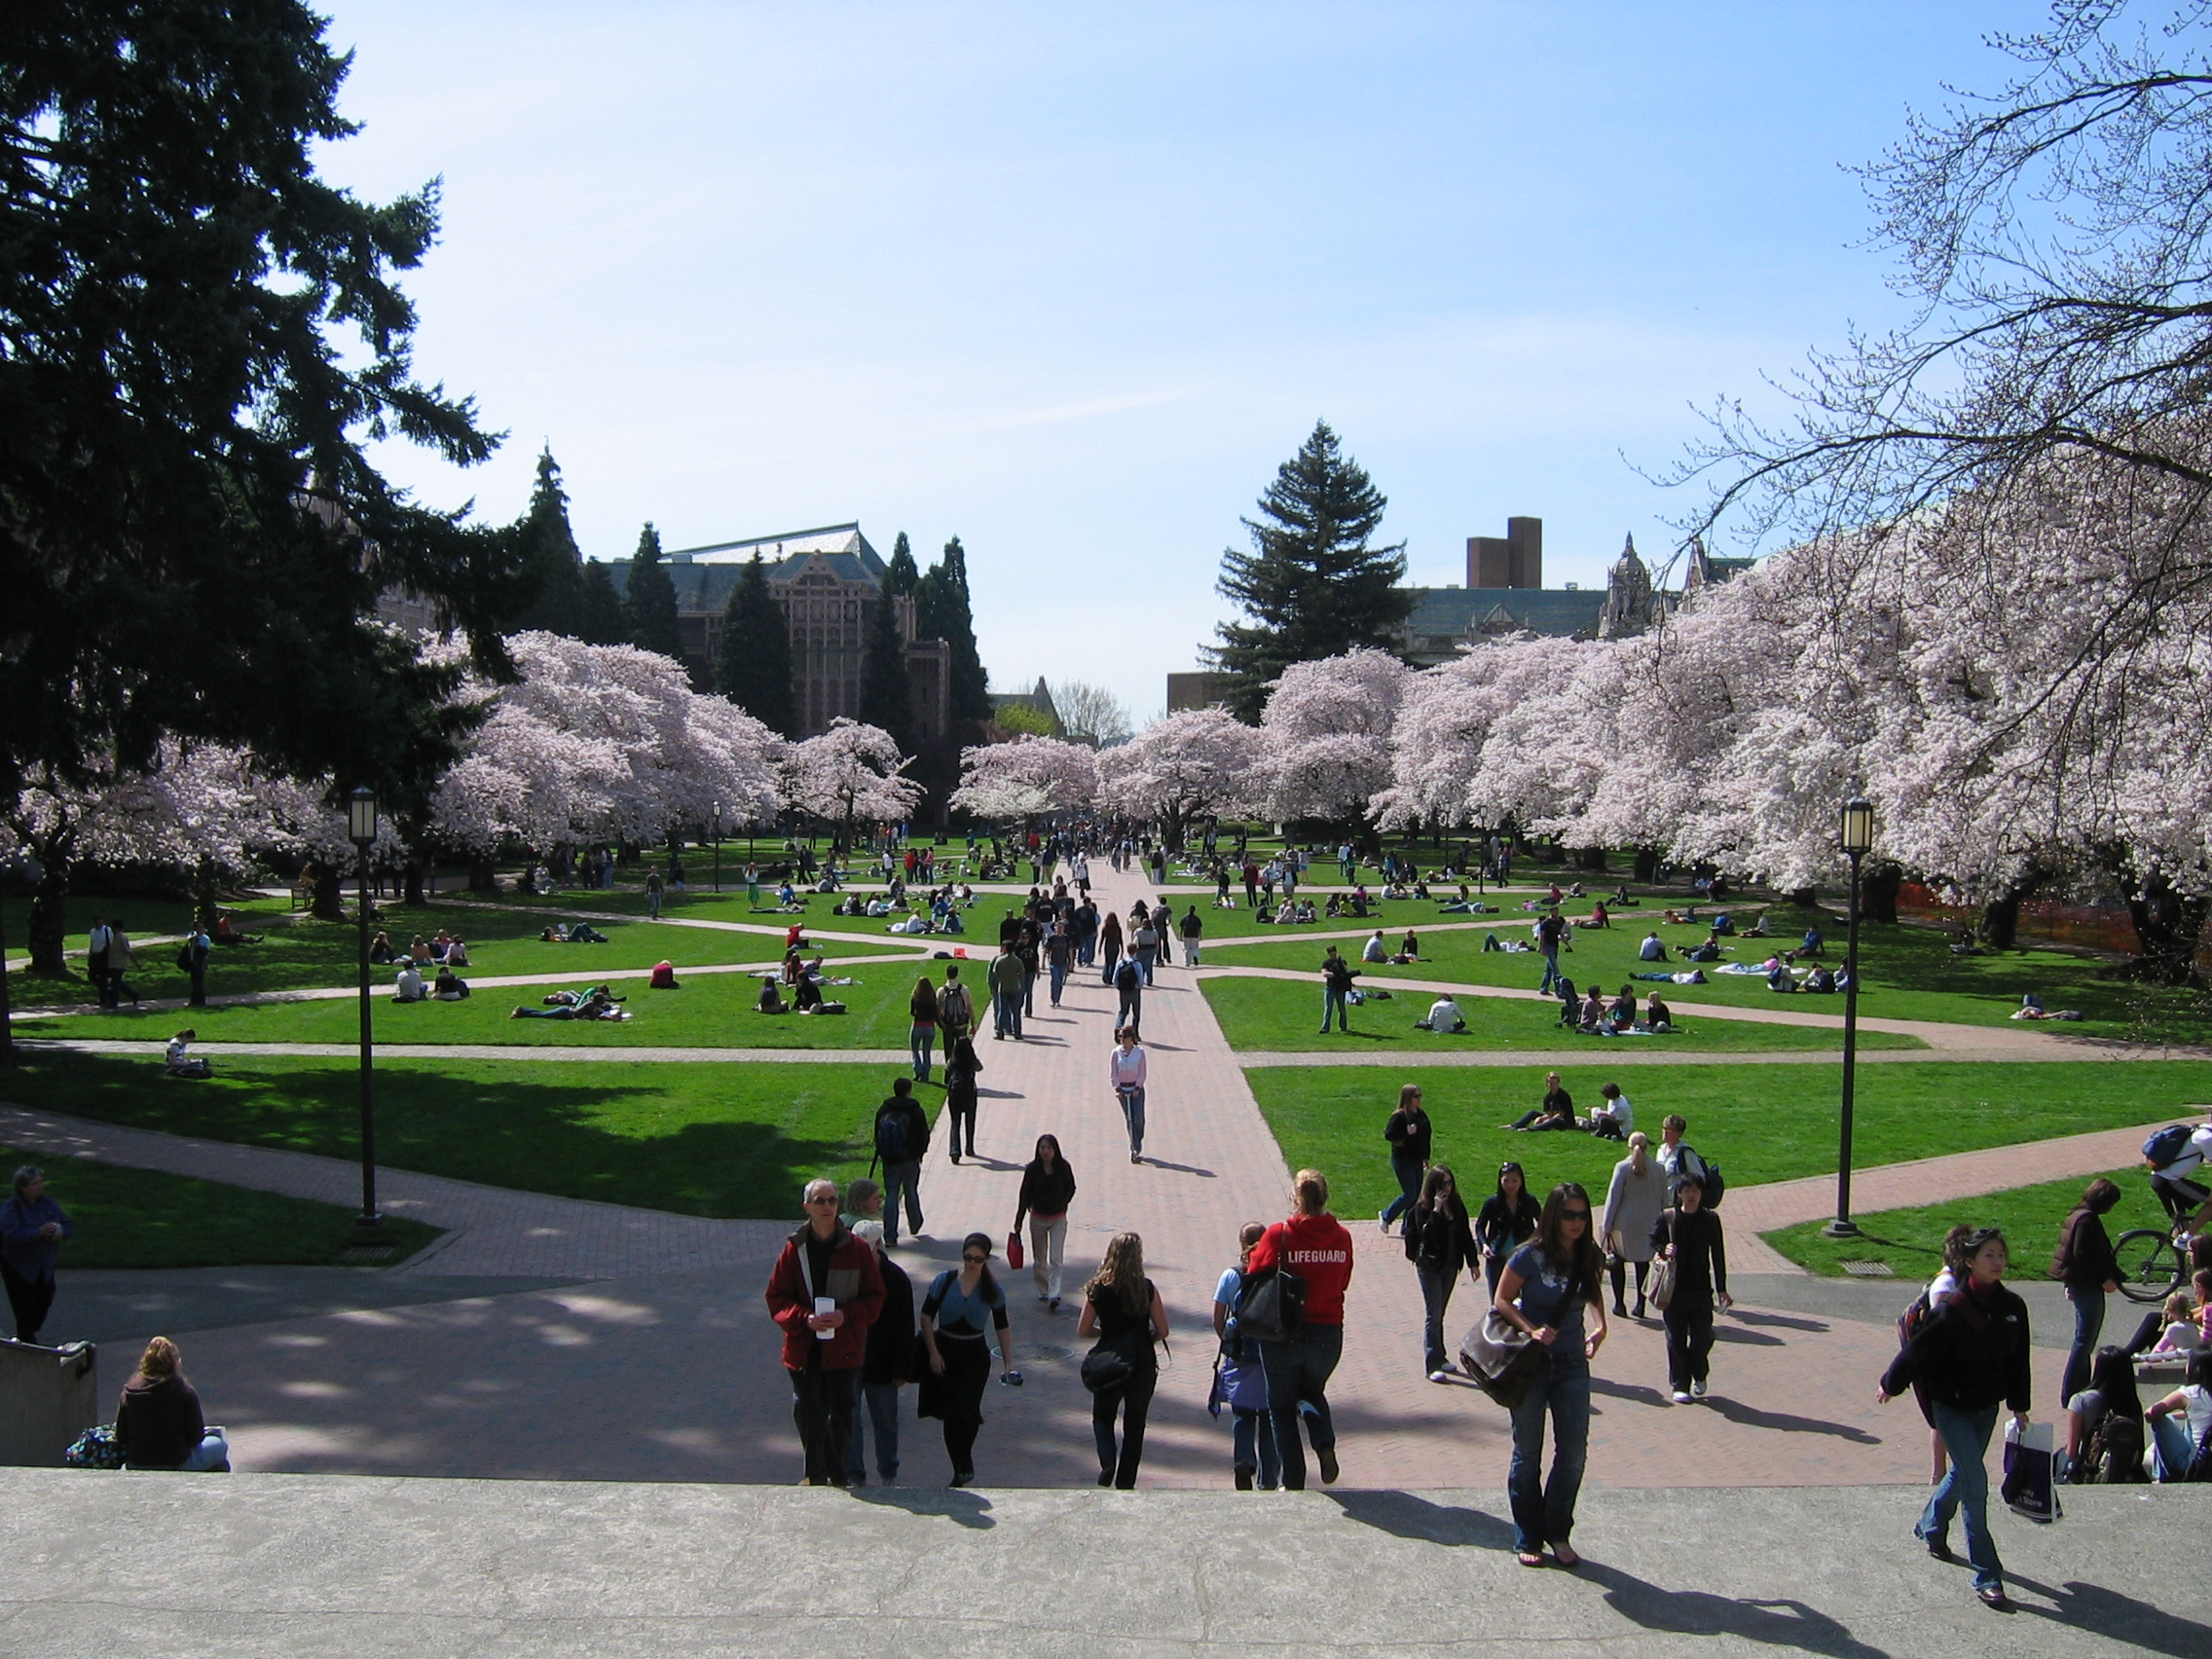 Washington state legislatures approved I-1000, which would re-introduce affirmative action to public universities and government contract awards. Several groups, however, are challenging the legislative initiative.